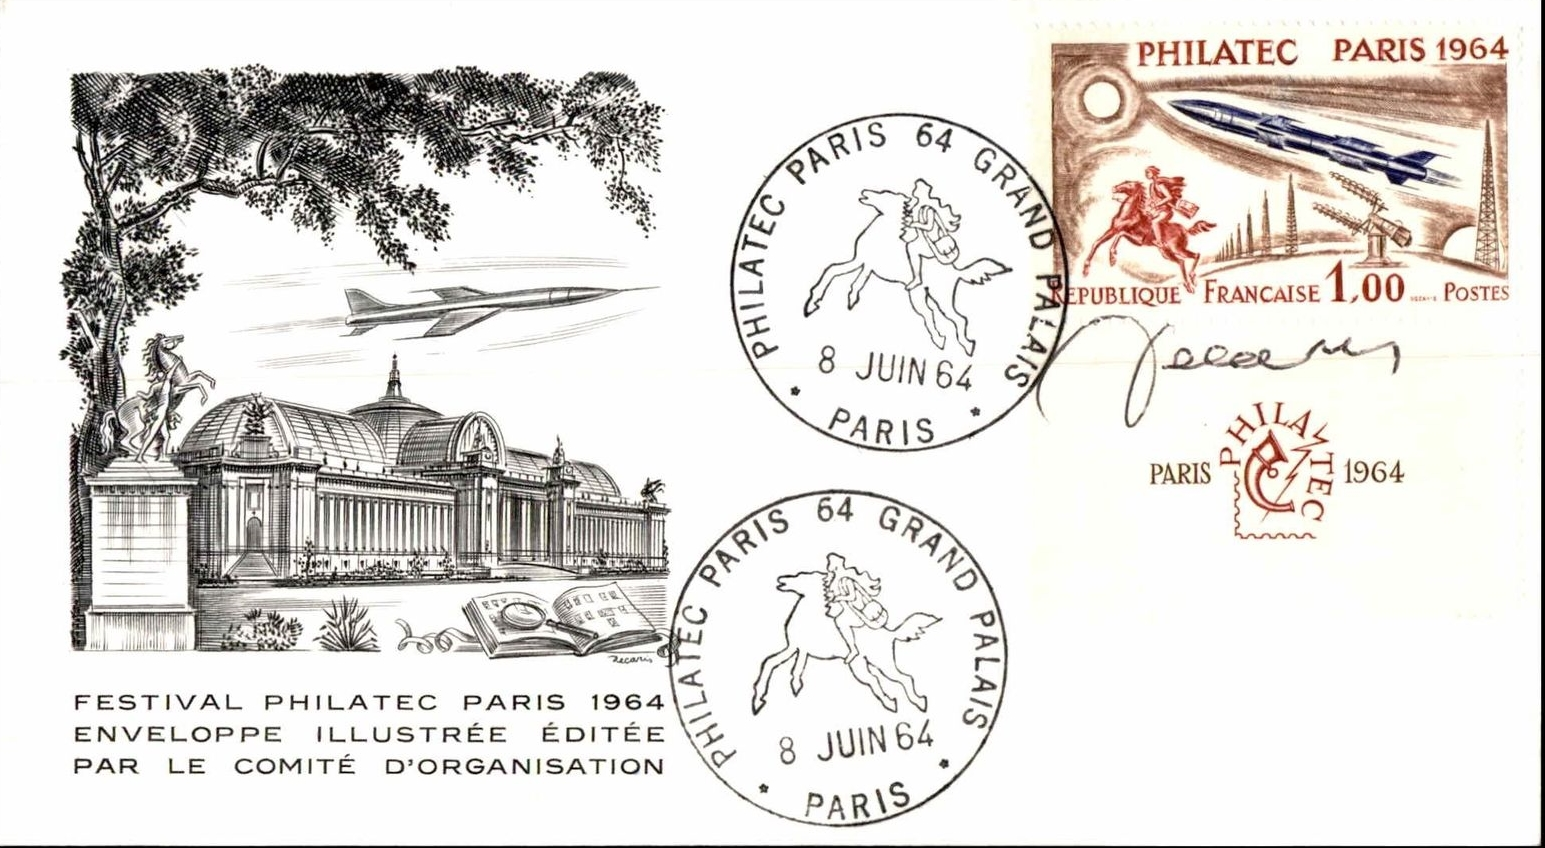 France - Scott #1100 (1964) on a cover posted from the PHILATEC exhibition in Paris. The cachet features a view of the Grand Palais and one of the Horses of Marly.